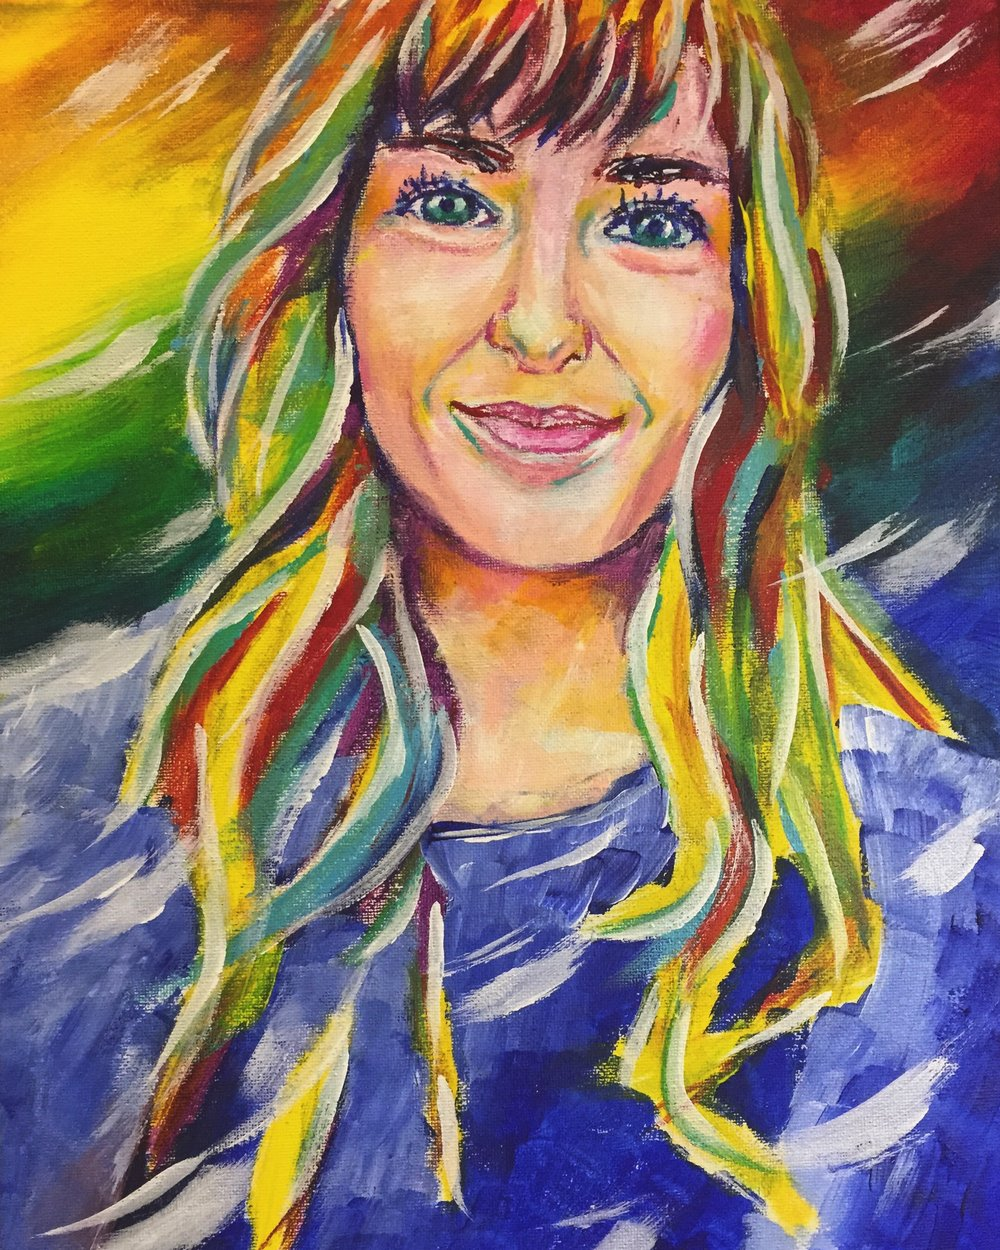 Amanda - Painting of Girlfriend by Taylor Wise